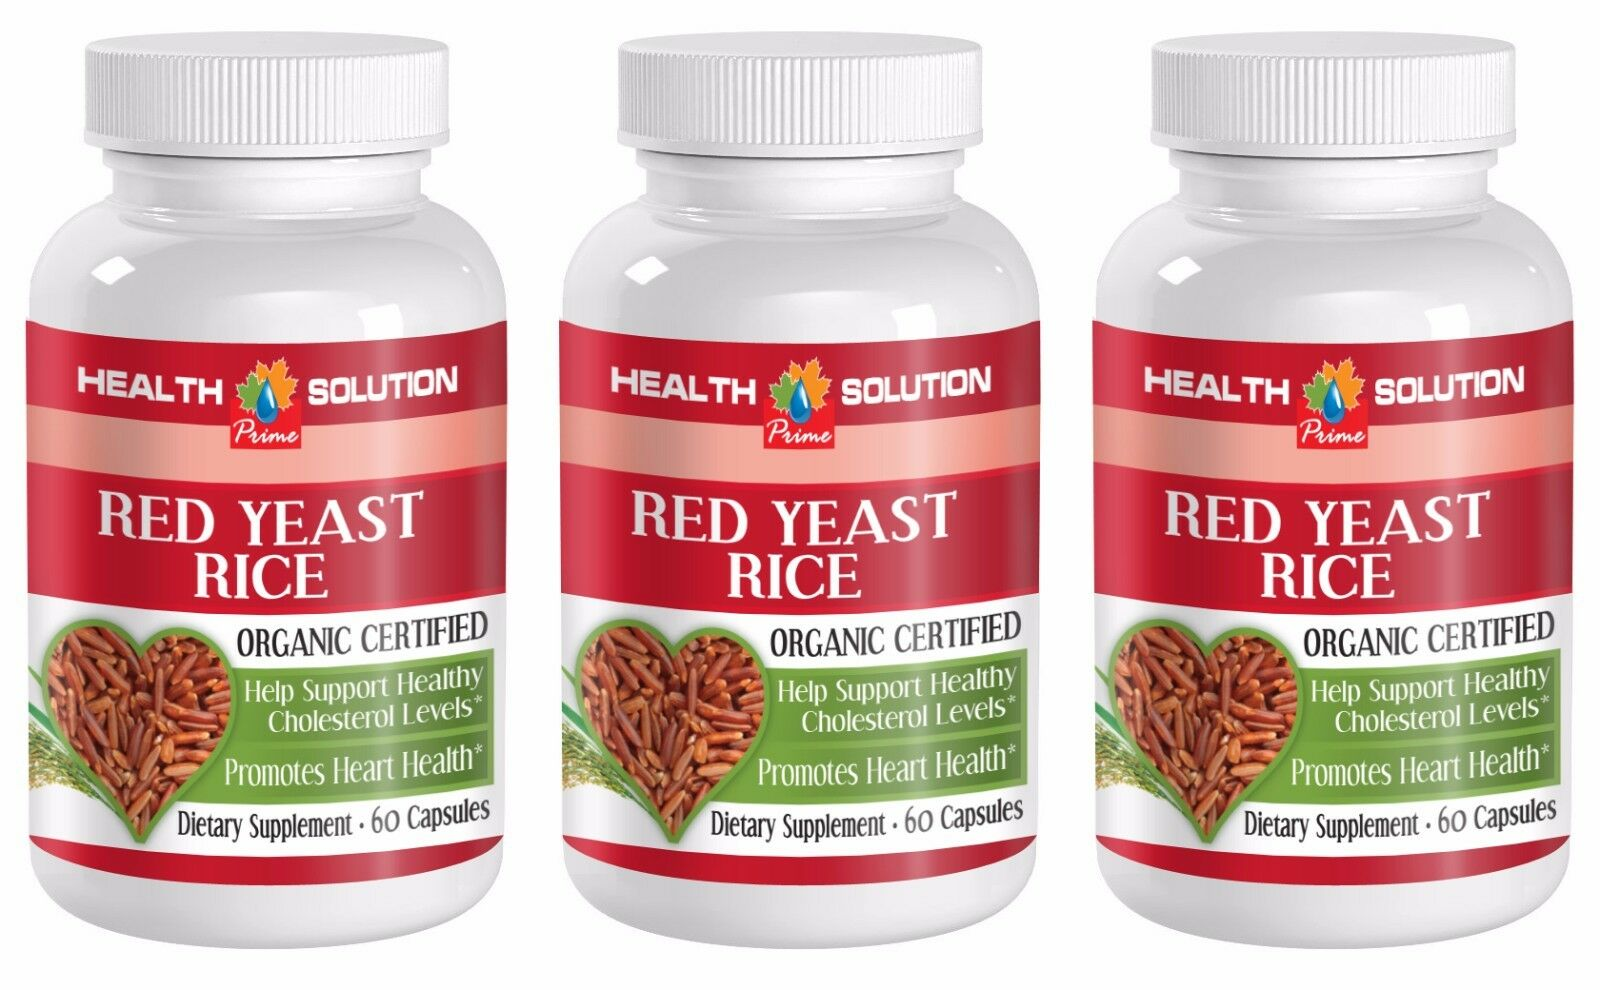 Blood pressure herbs - RED YEAST RICE 600MG 3B - red yeast powder for baking 1